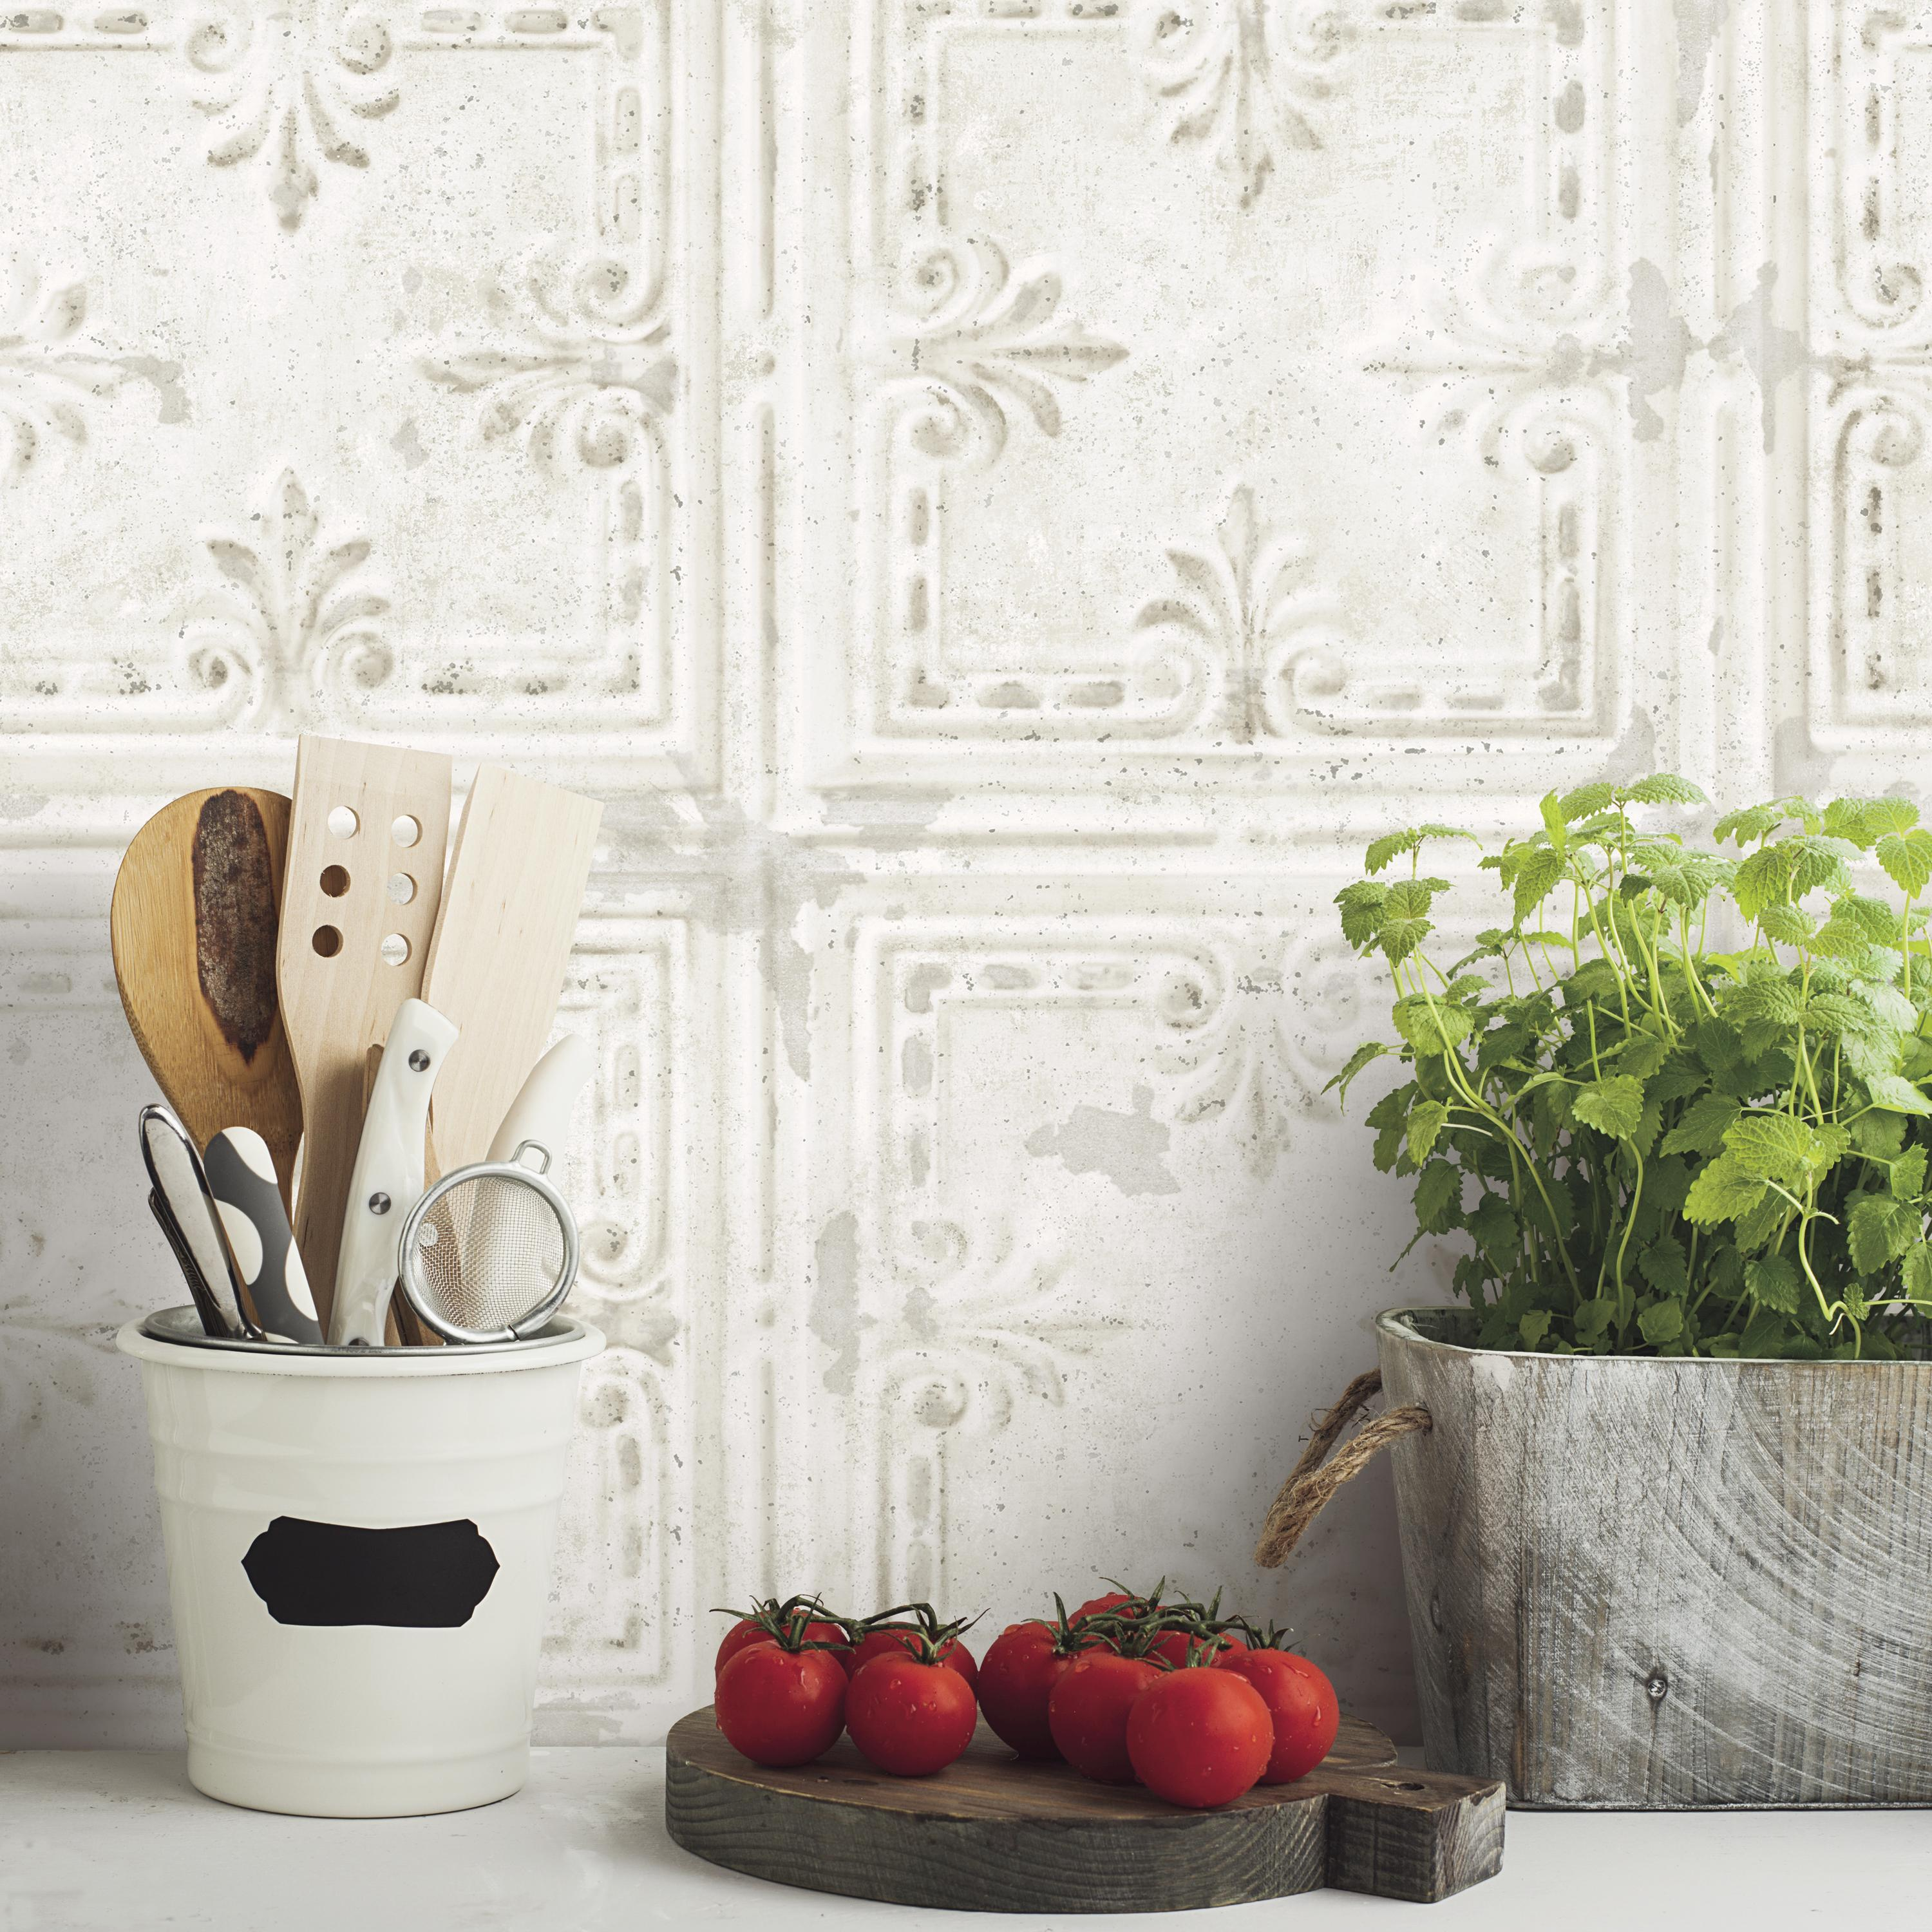 Up To 45 Off Peel Stick Kitchen Backsplash Tile At Walmart: Tin Tile White Peel And Stick Wallpaper, Buy One Get One